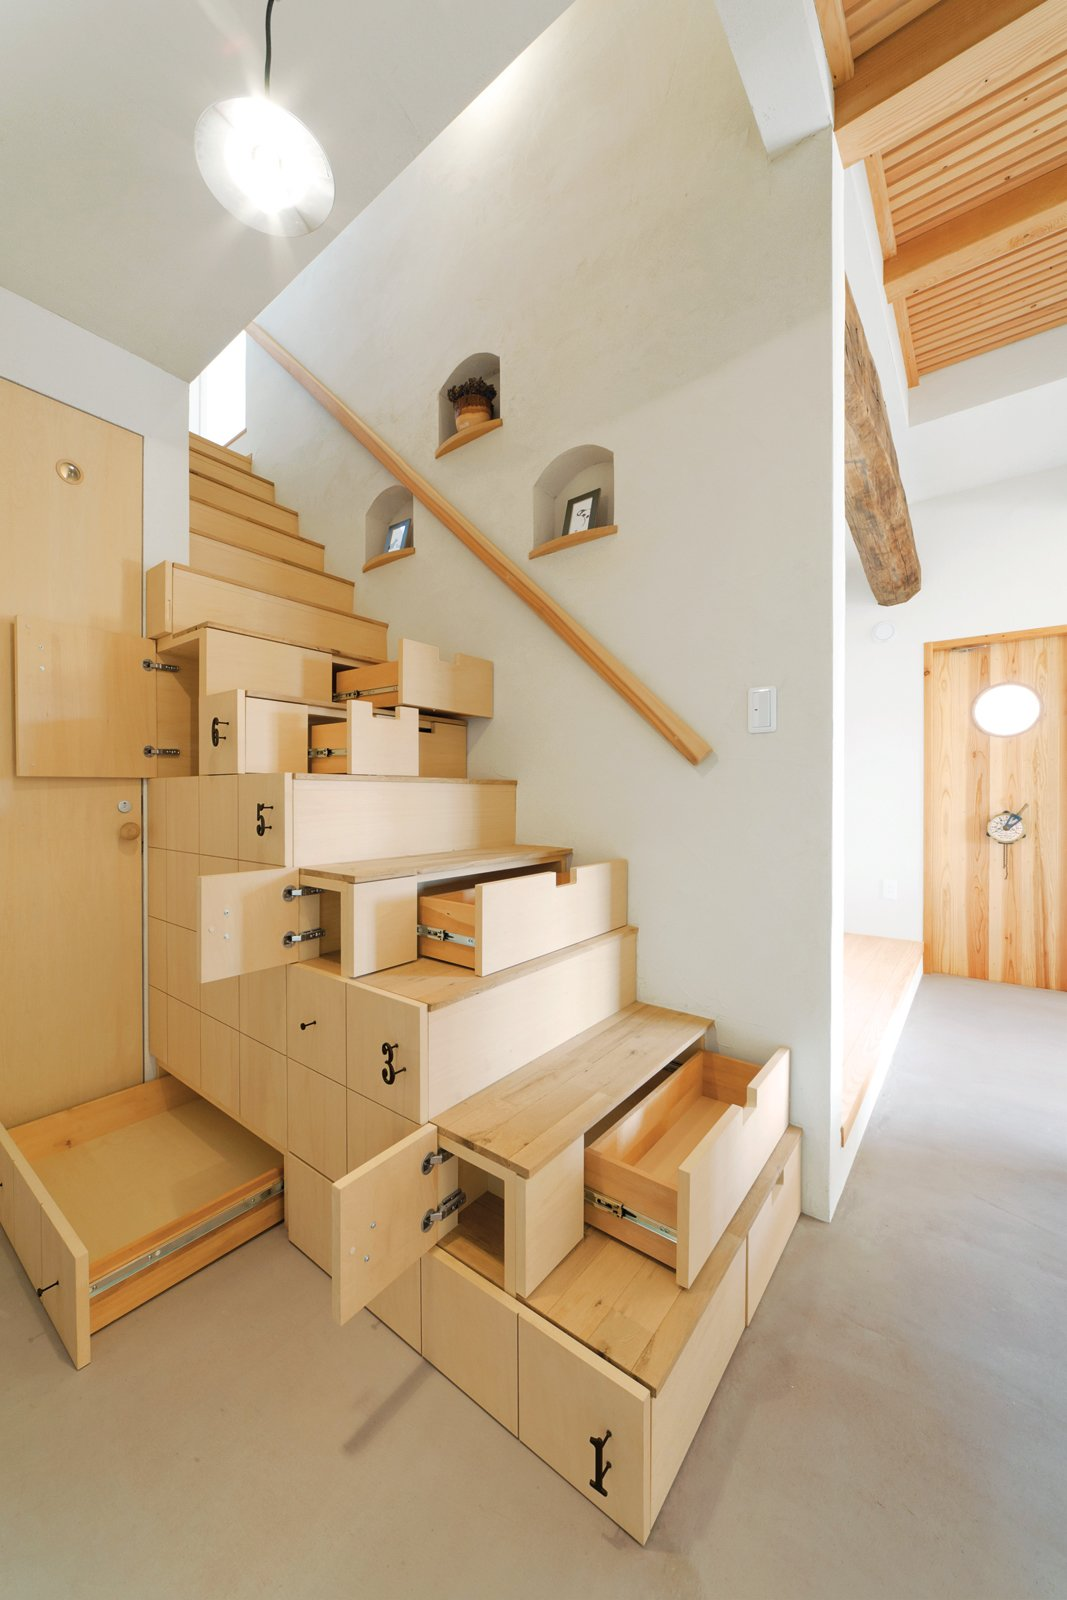 Storage Room and Under Stairs Storage Type Photo caption: In traditional Japanese houses, clever carpenters often combined staircases with storage to maximize living space and storage.  Photo 1 of 10 in 10 Clever Ways to Sneak Storage Into Your Renovation